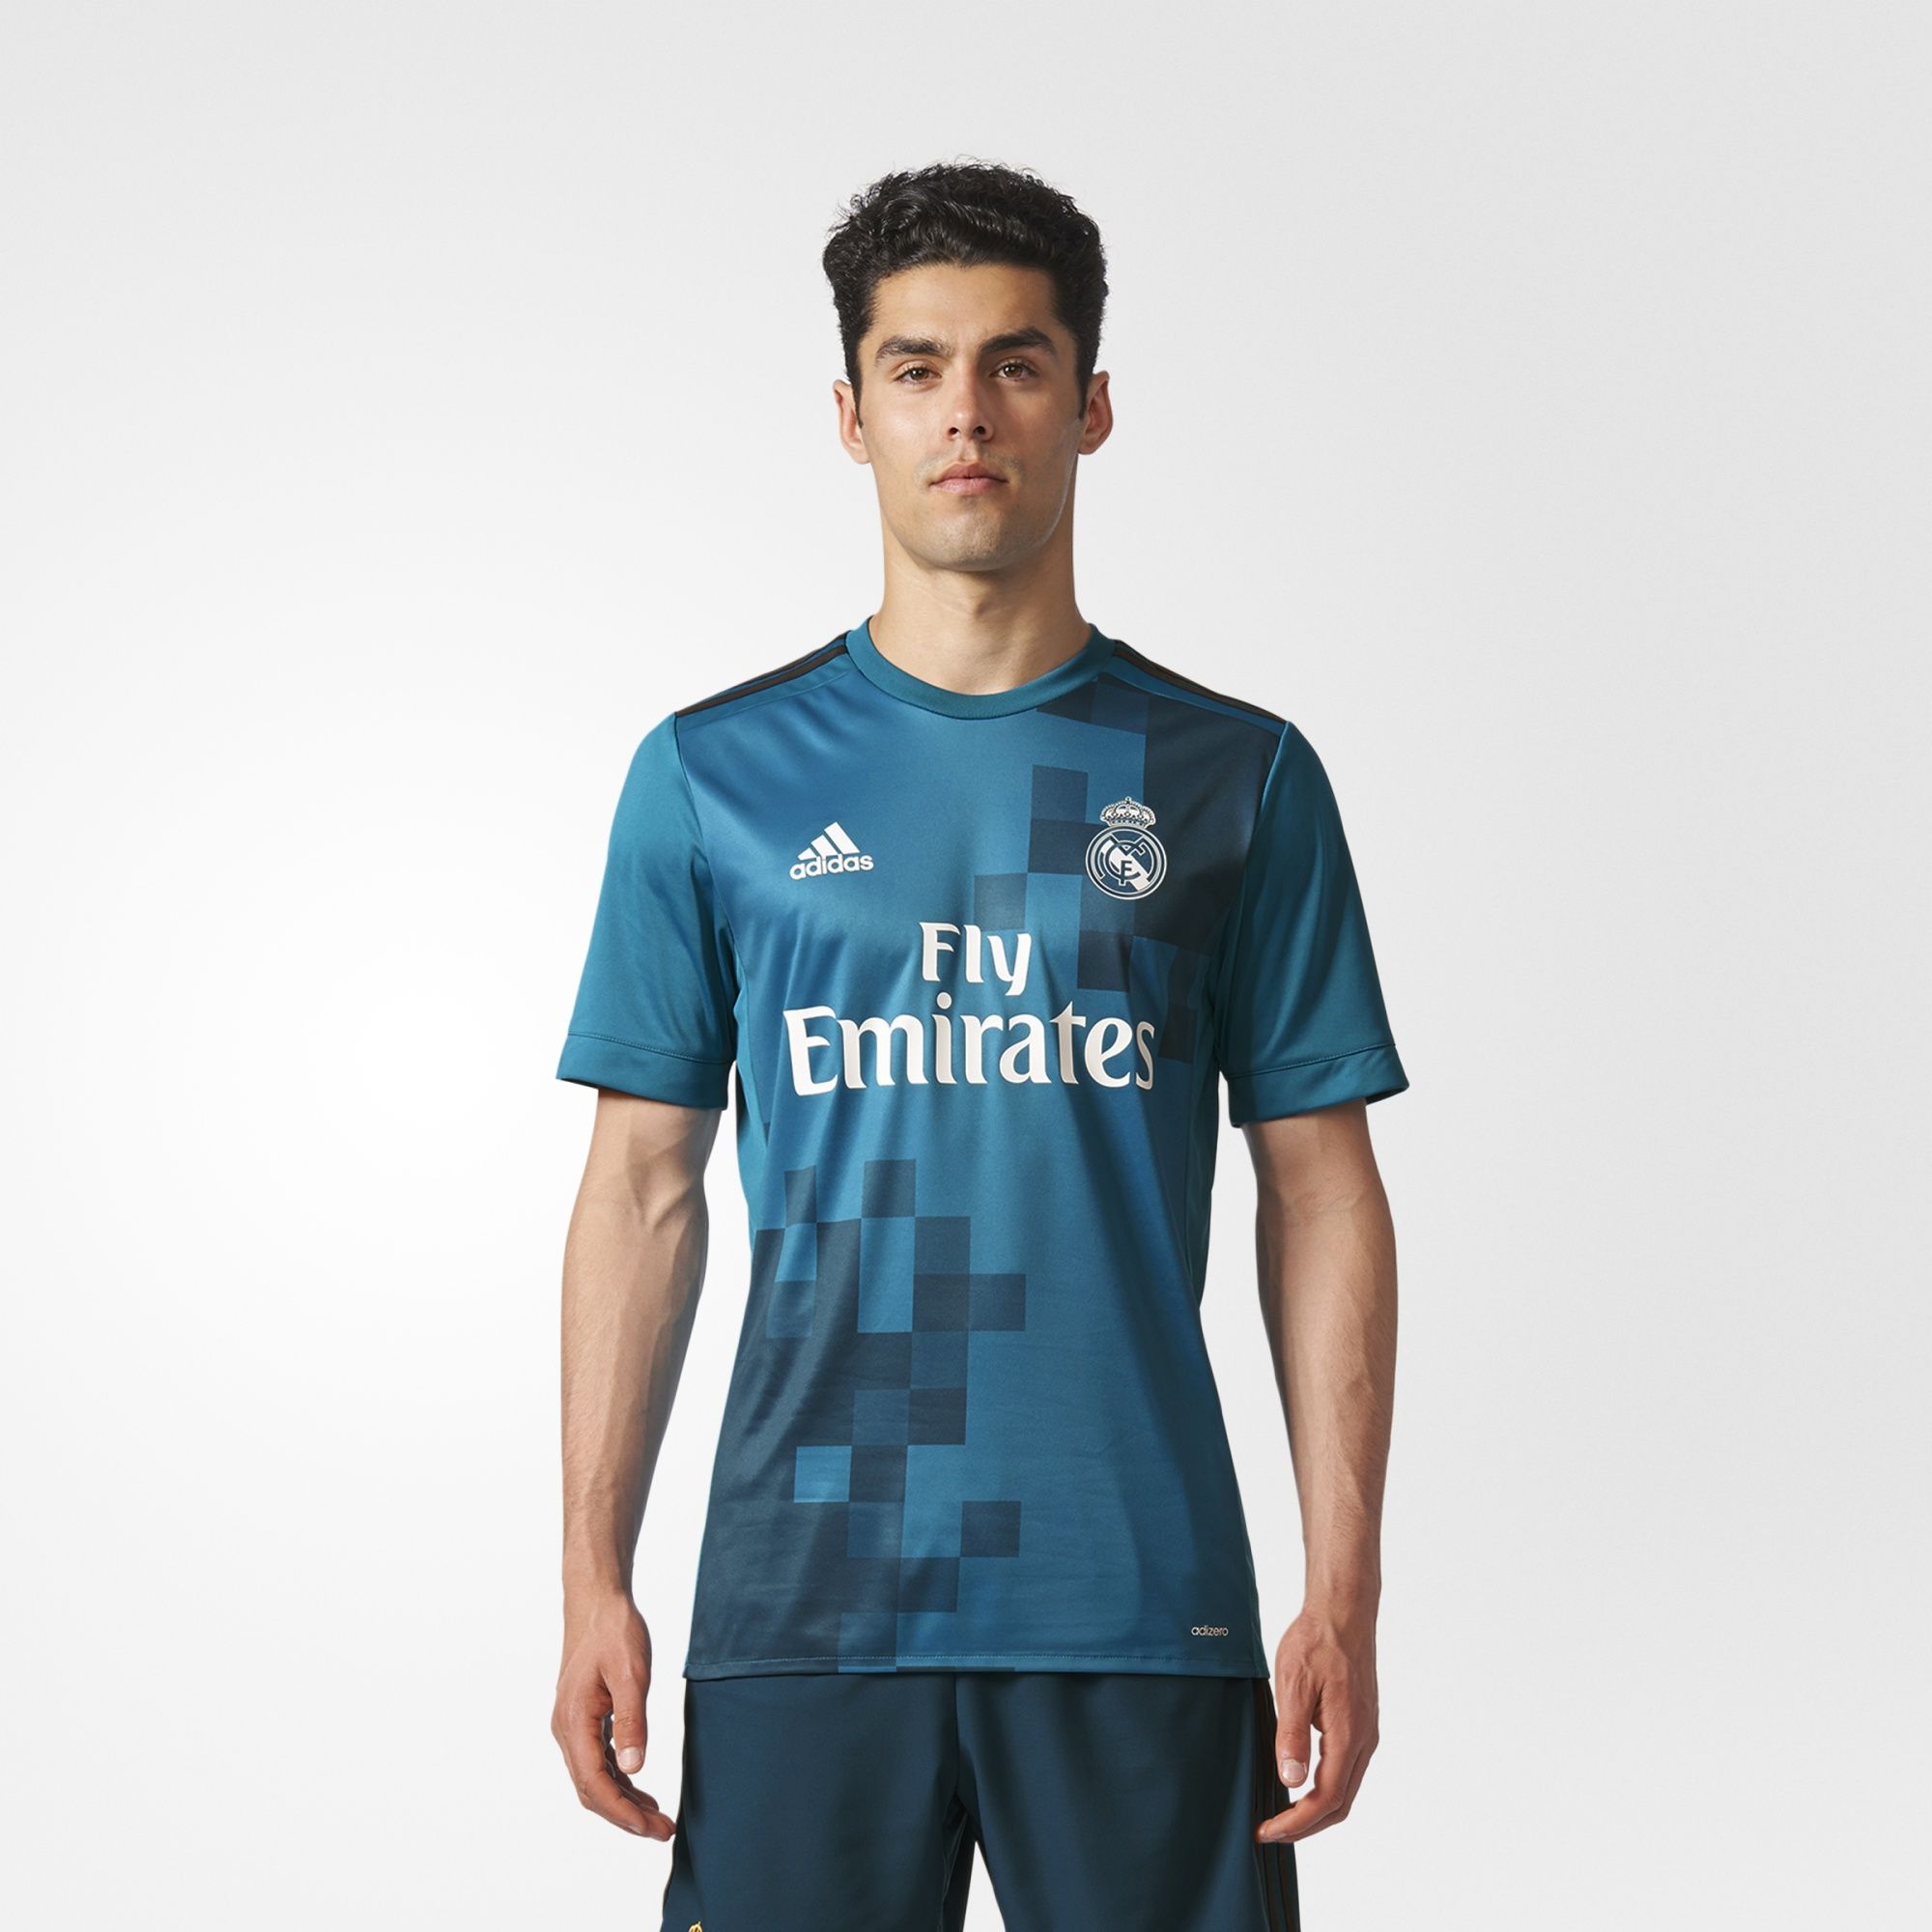 ... Real Madrid 17 18 Adidas Home Kit · Click to enlarge image  real madrid 17 18 adidas third kit a.jpg ... 0e62f9d20